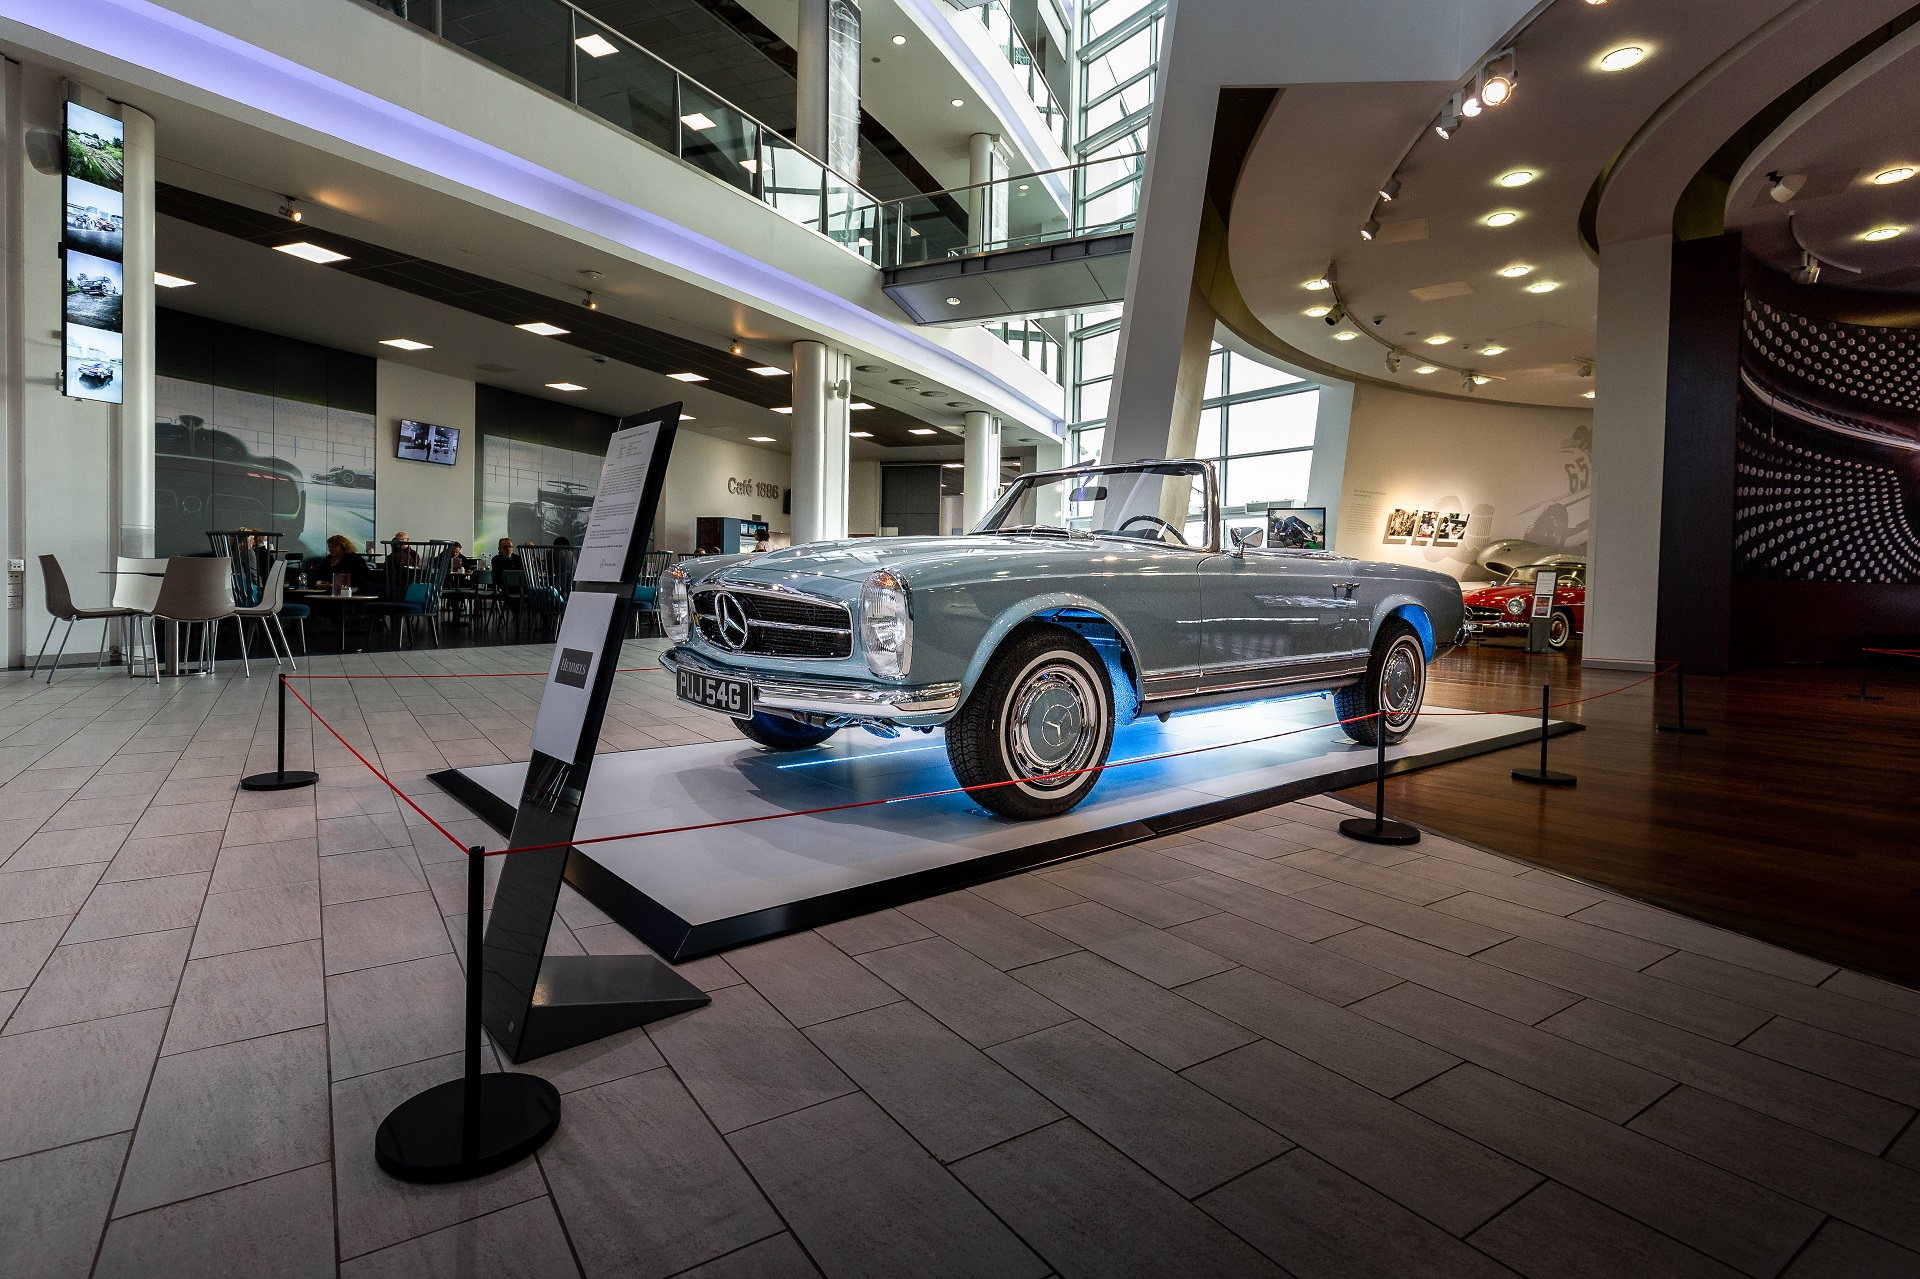 1968 Mercedes-Benz W113 280SL Pagoda in Horizon Blue side view at Mercedes Benz World Brooklands